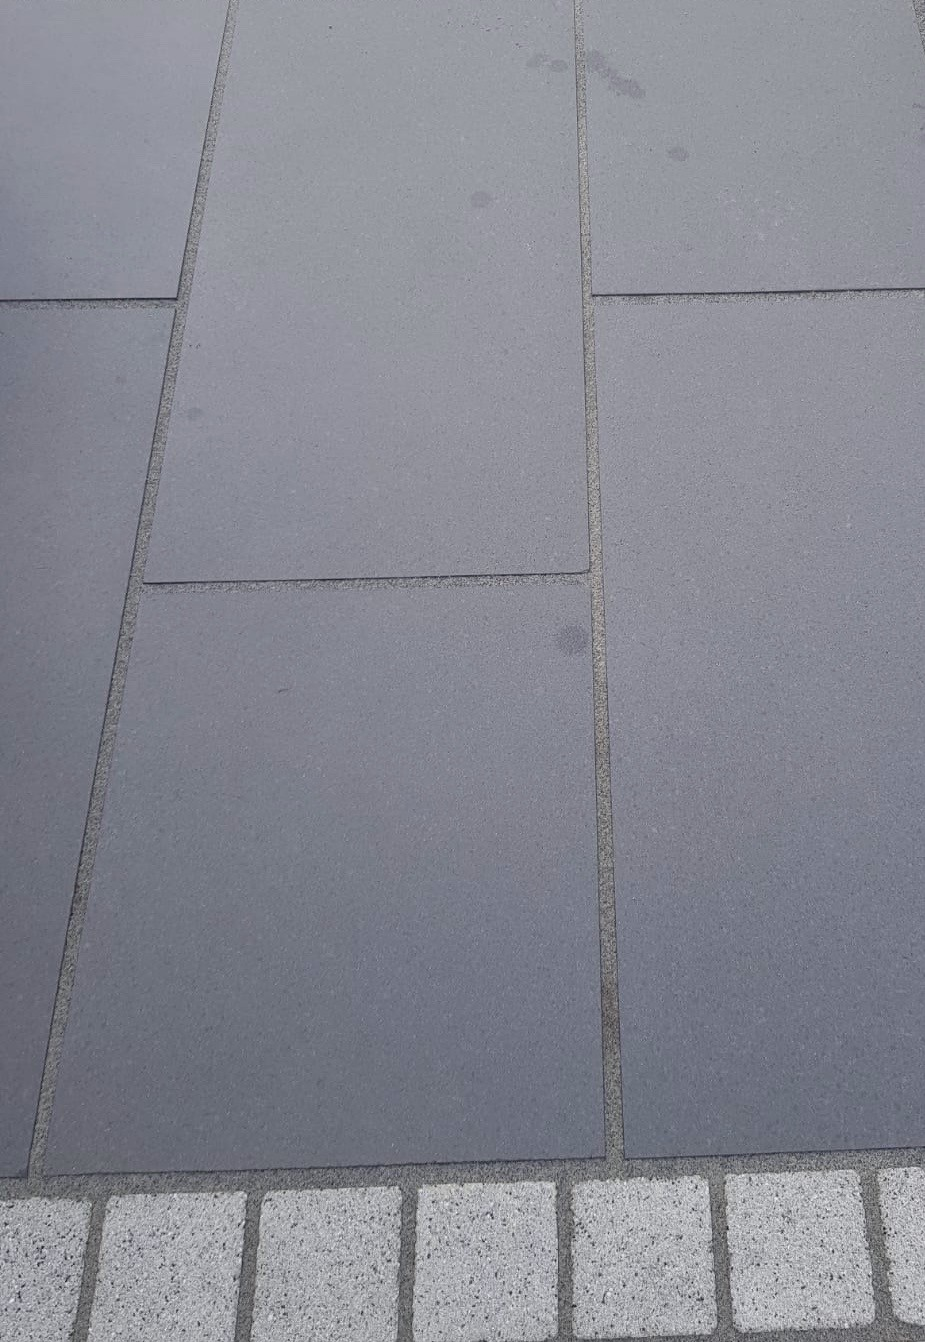 Copus Basalt Black Porcelain 900 x 600 x 20mm Paving Slabs 19.20m²